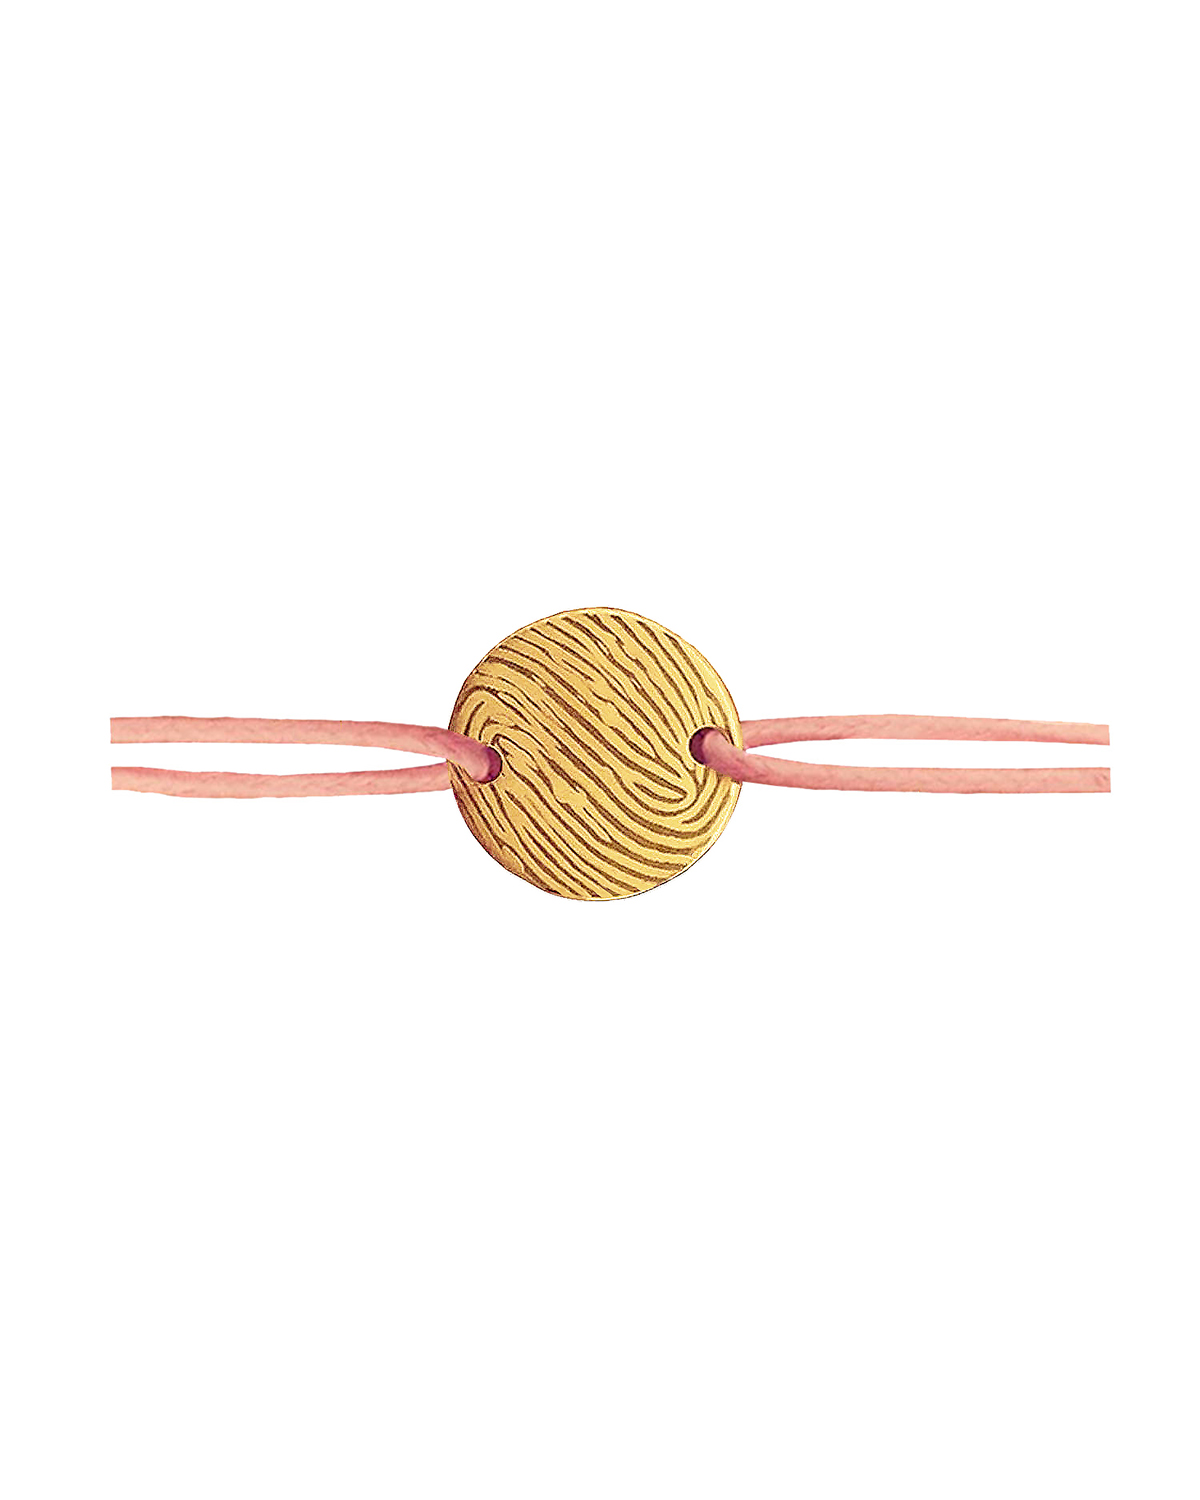 Cord Bracelet, Gold-plated